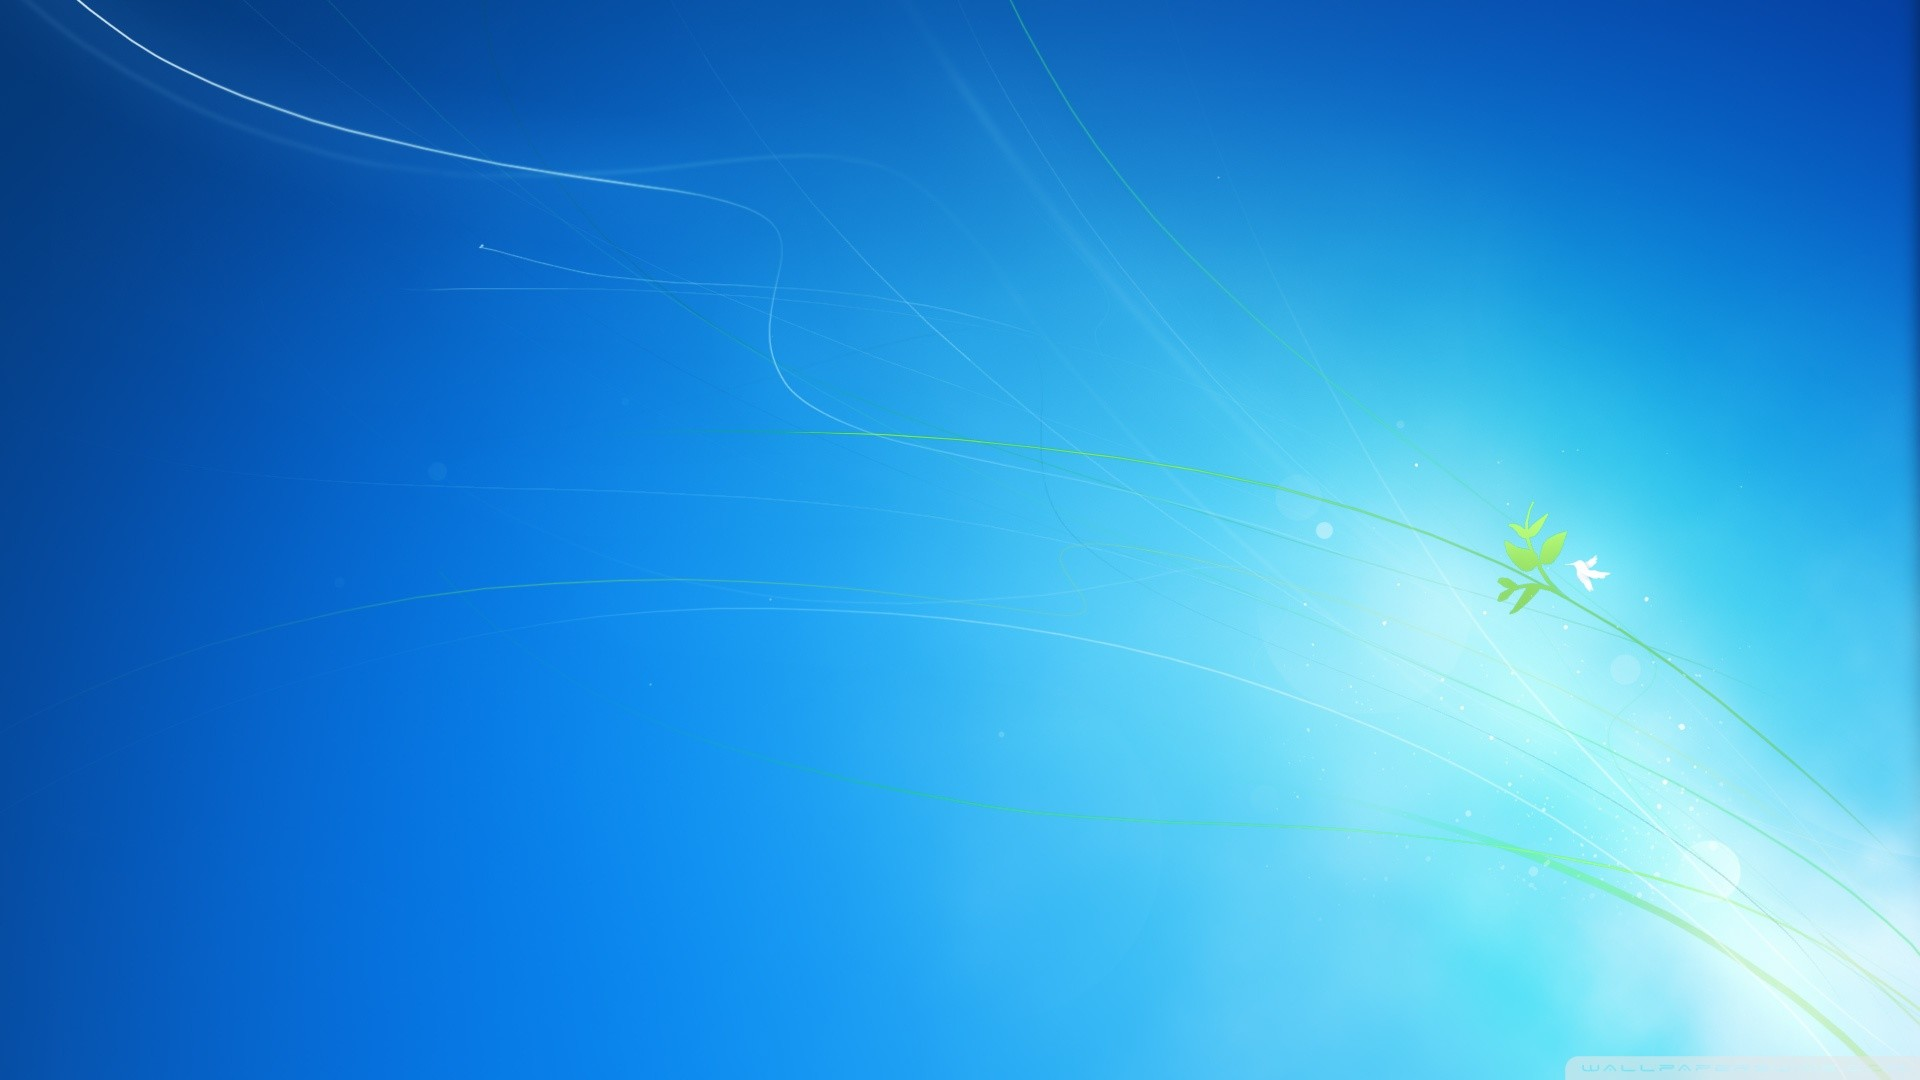 1920x1080 windows 7 wallpaper: Windows 7 Background Pictures (71+ Images